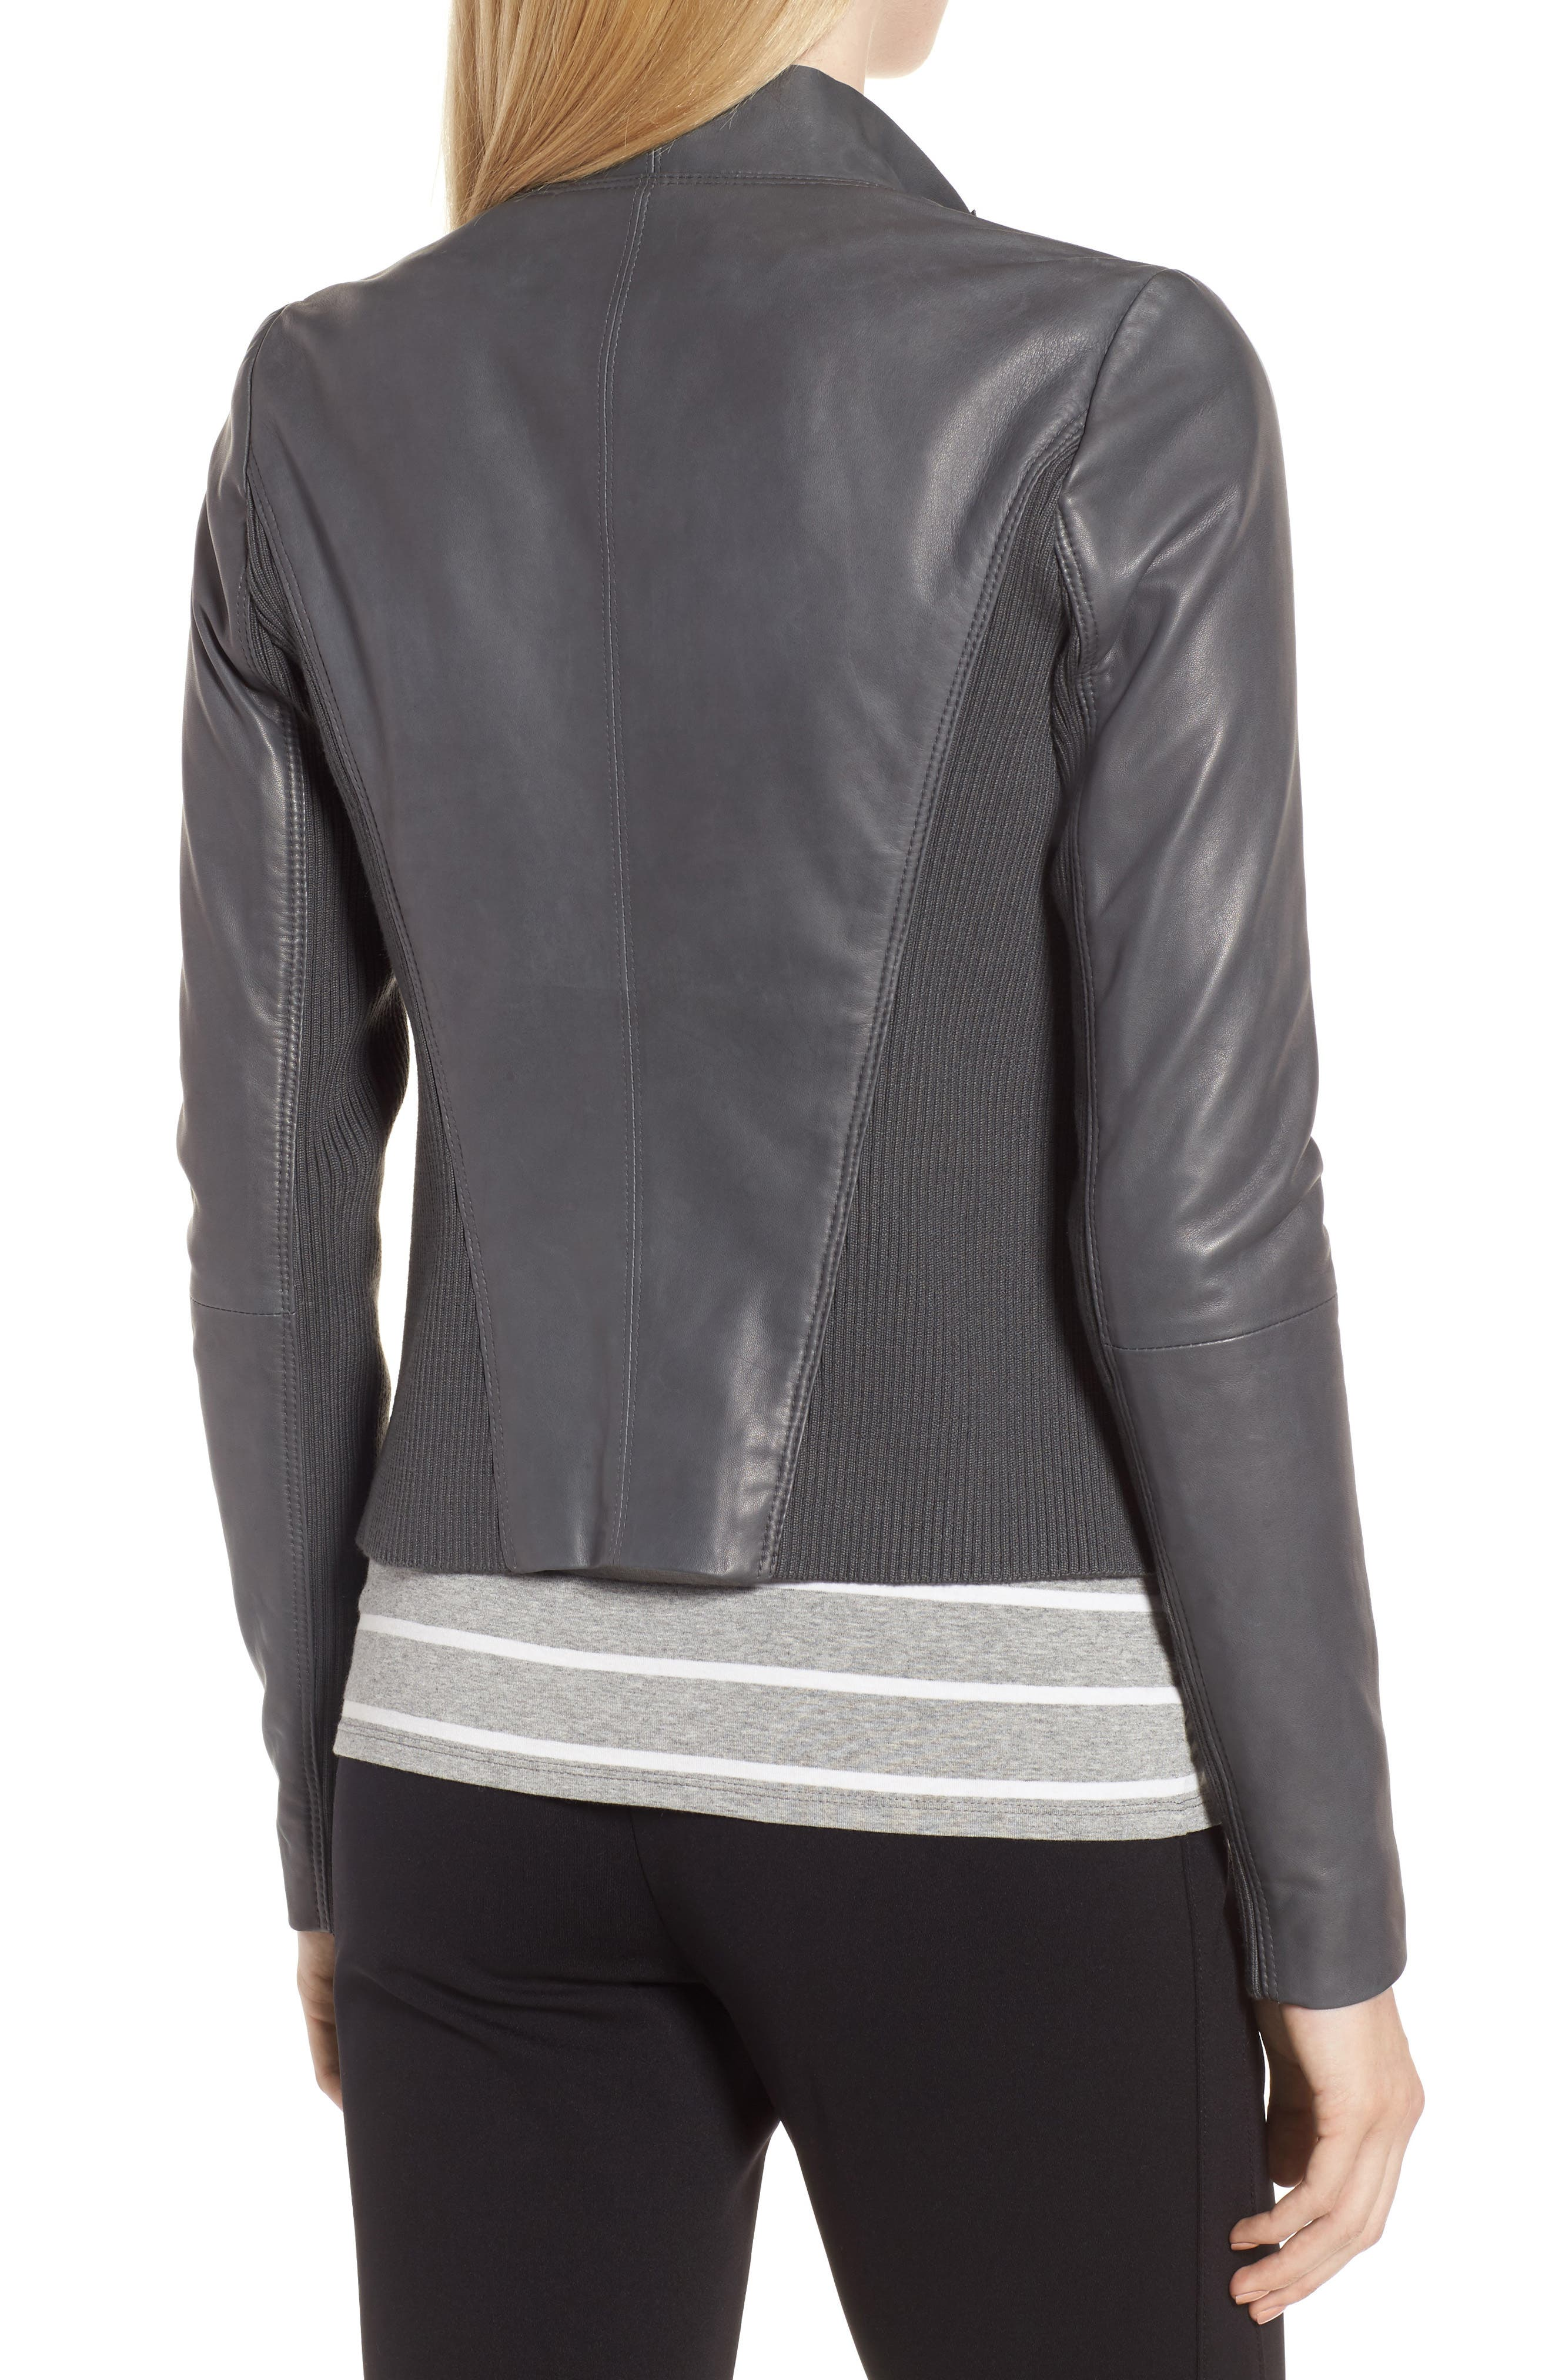 Cascade Front Leather Jacket,                             Alternate thumbnail 2, color,                             021